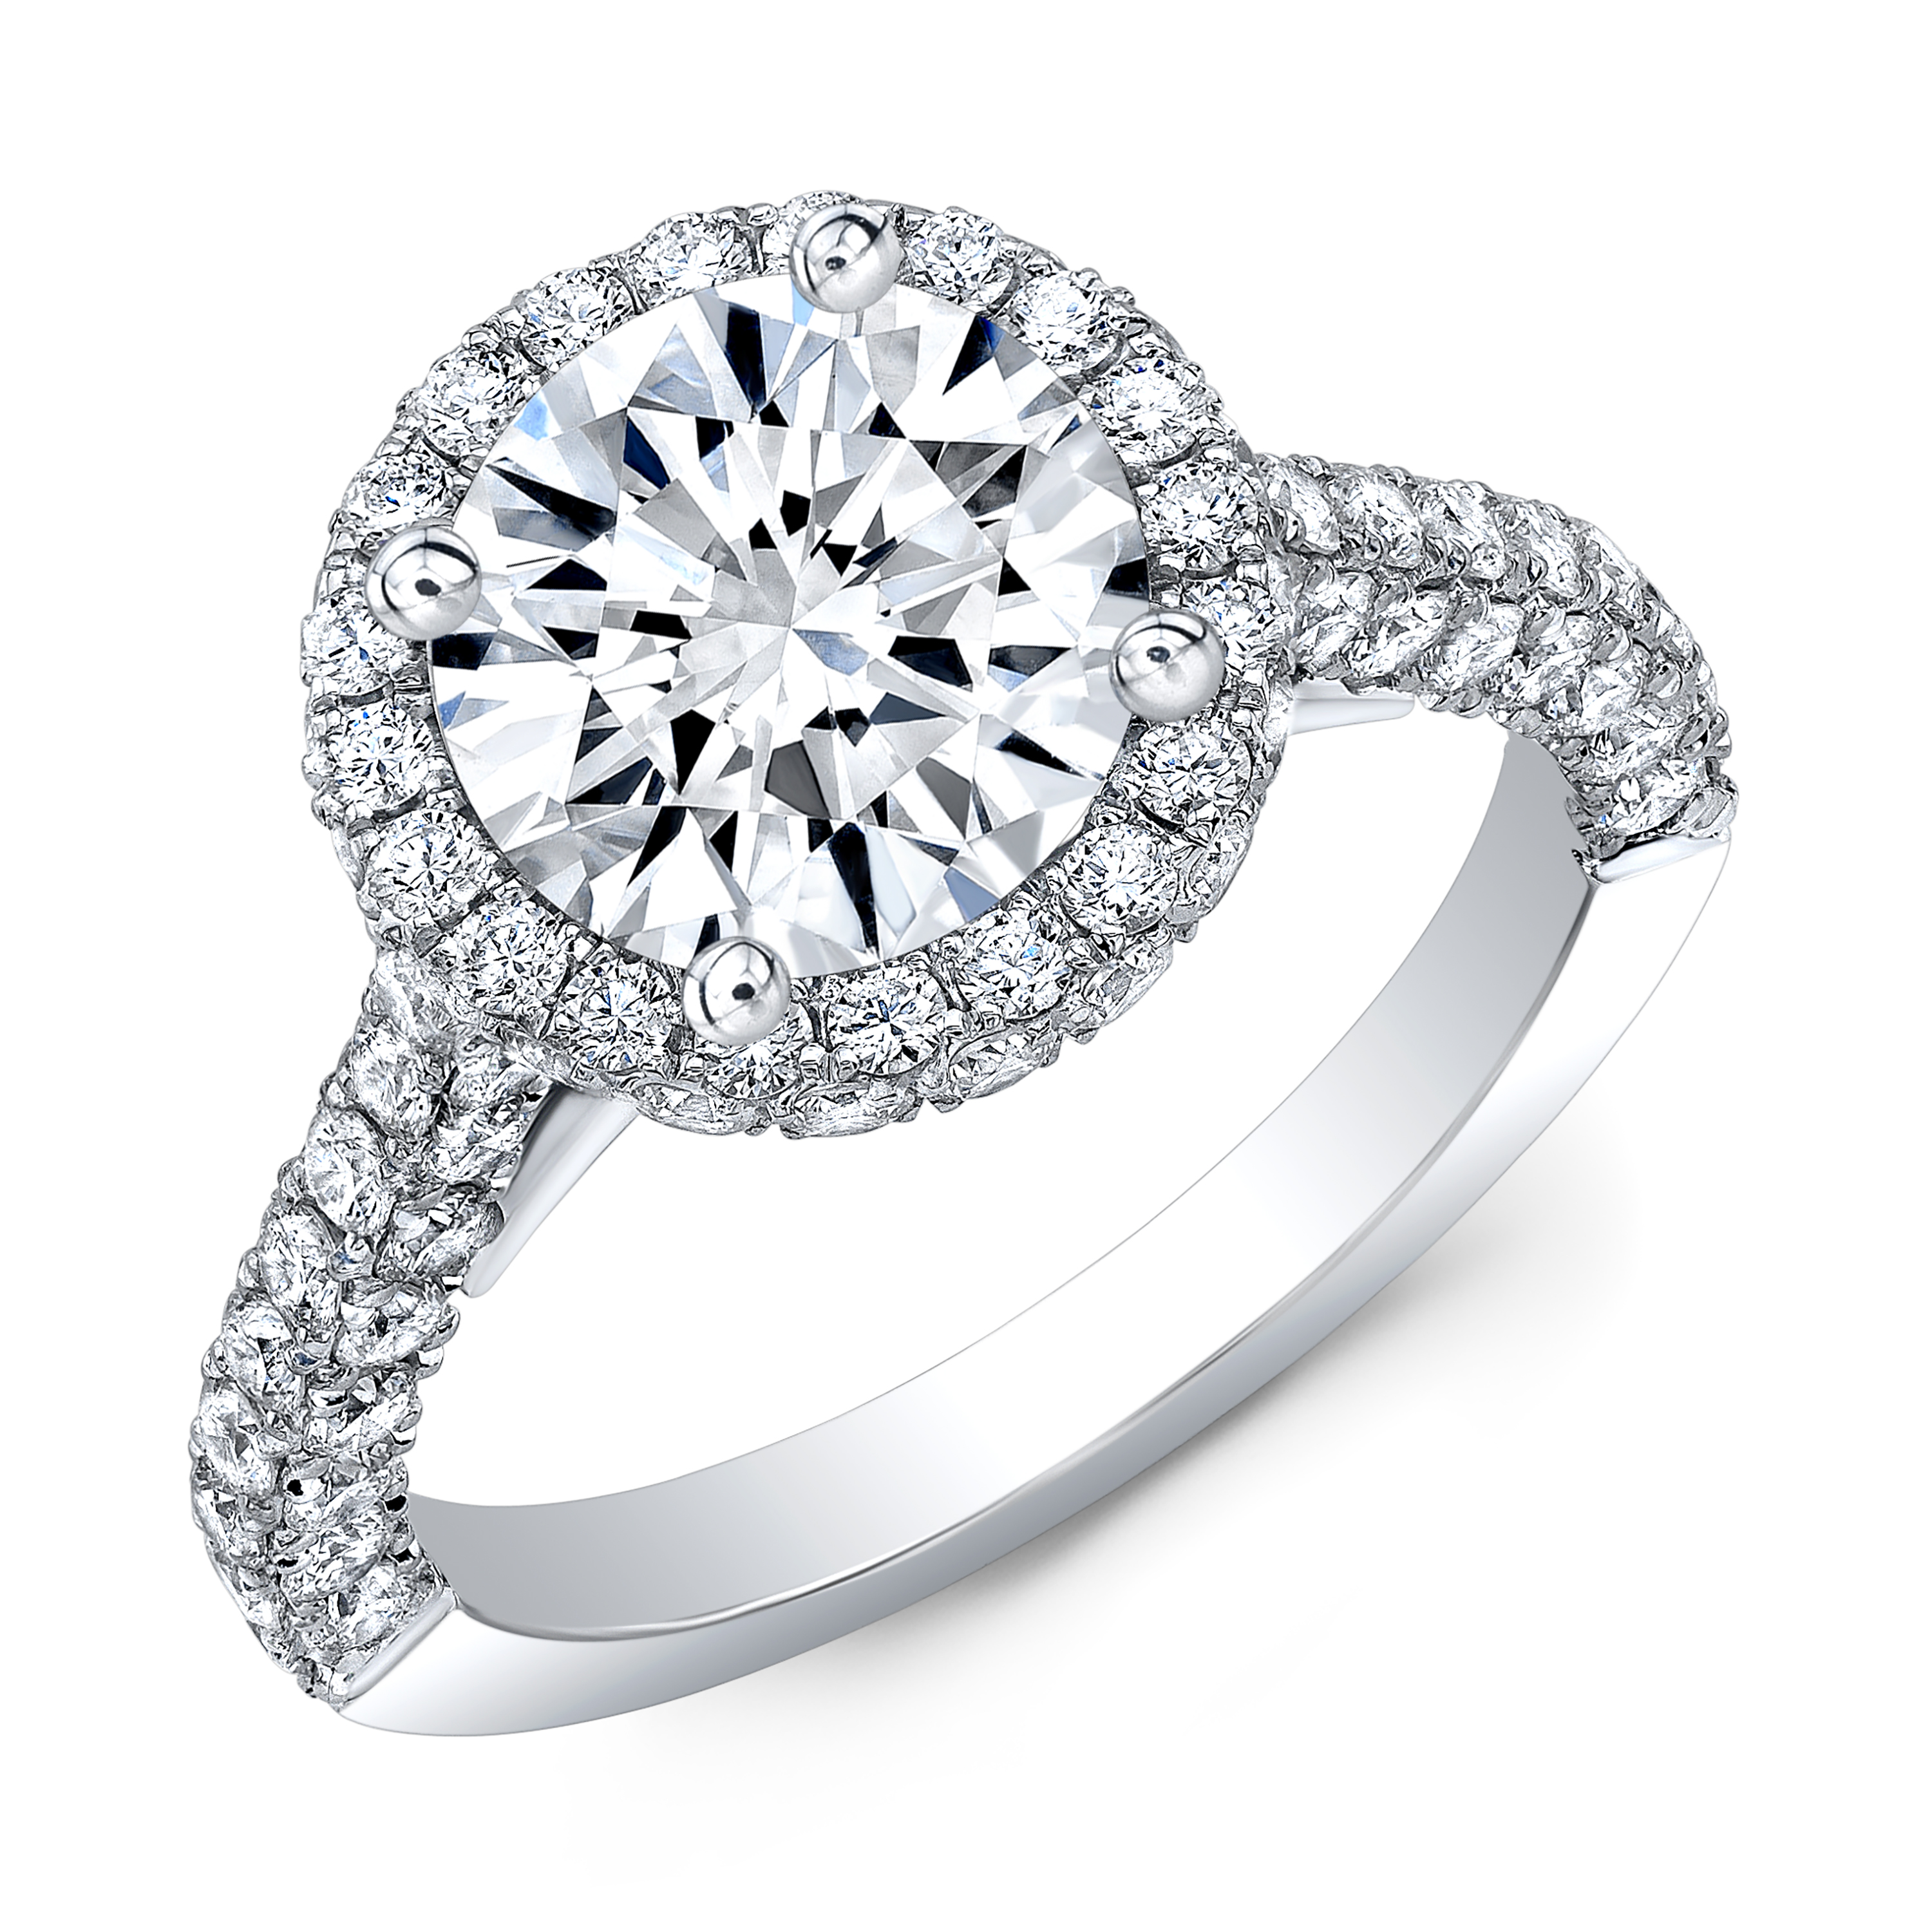 Micro Pave Round Cut Diamond Engagement Ring